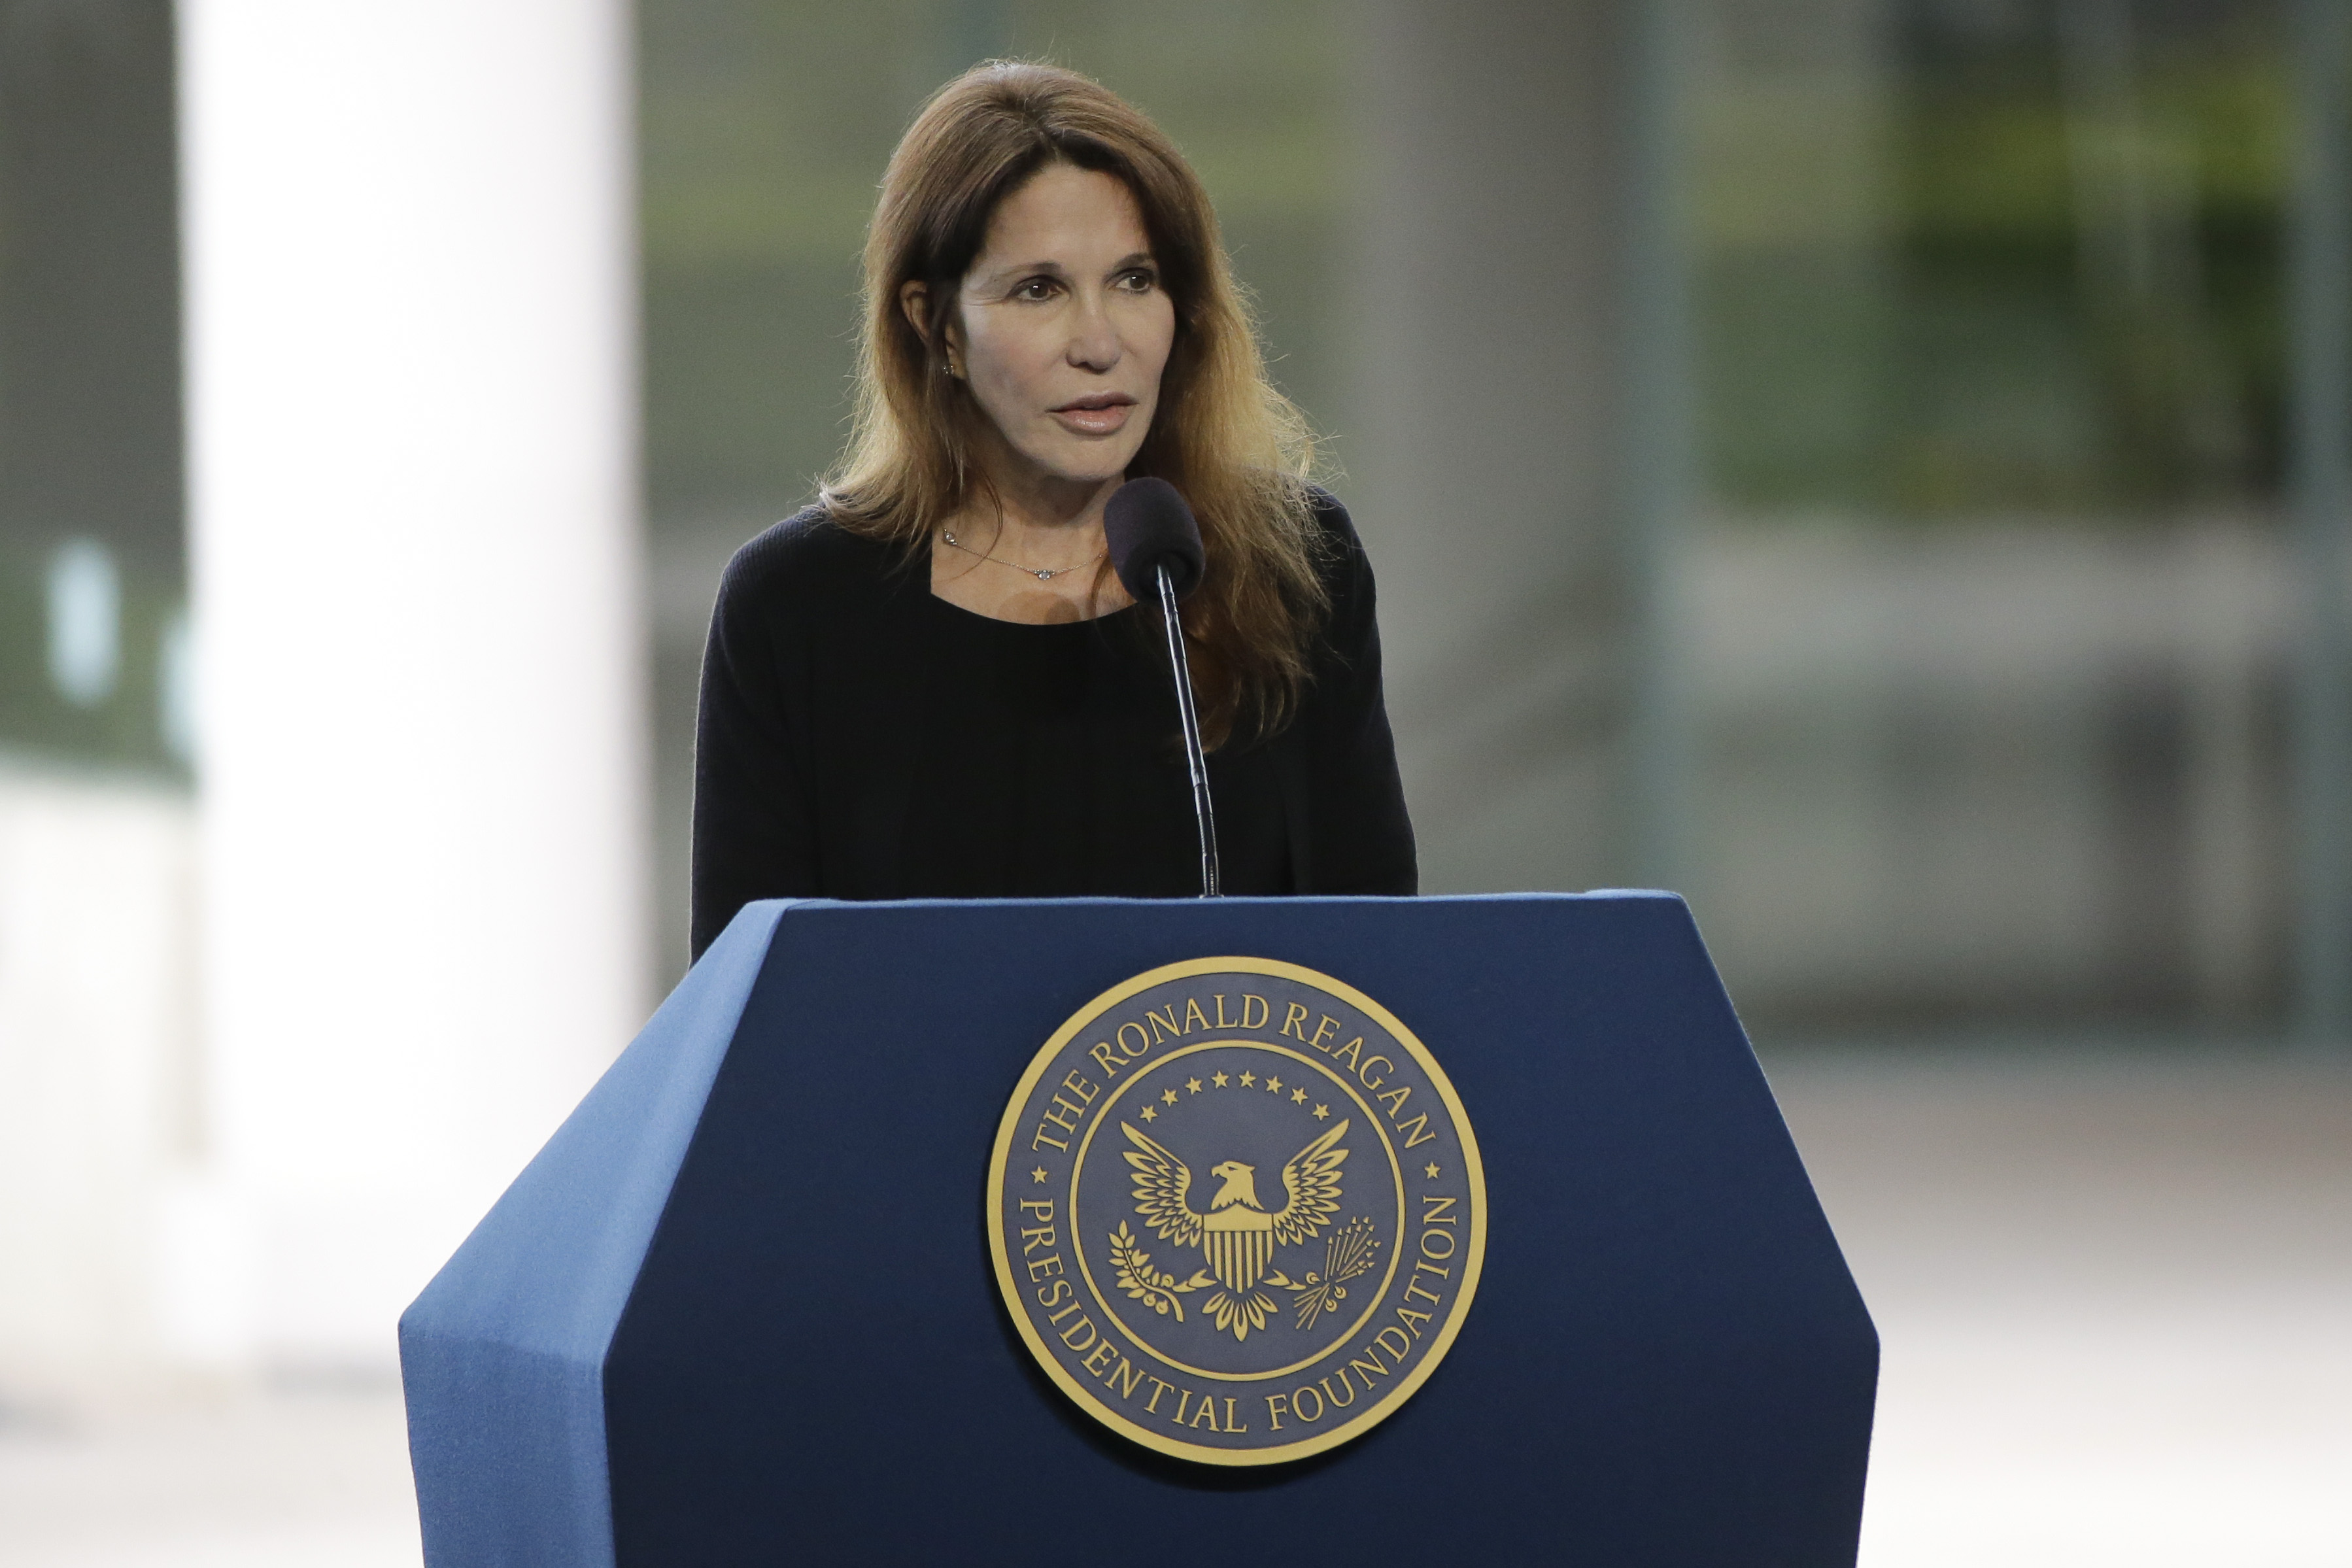 Patti Davis, daughter of late former President Ronald Reagan and Nancy Reagan speaks during the funeral service for the former First Lady at the Ronald Reagan Presidential Library March 11, 2016.